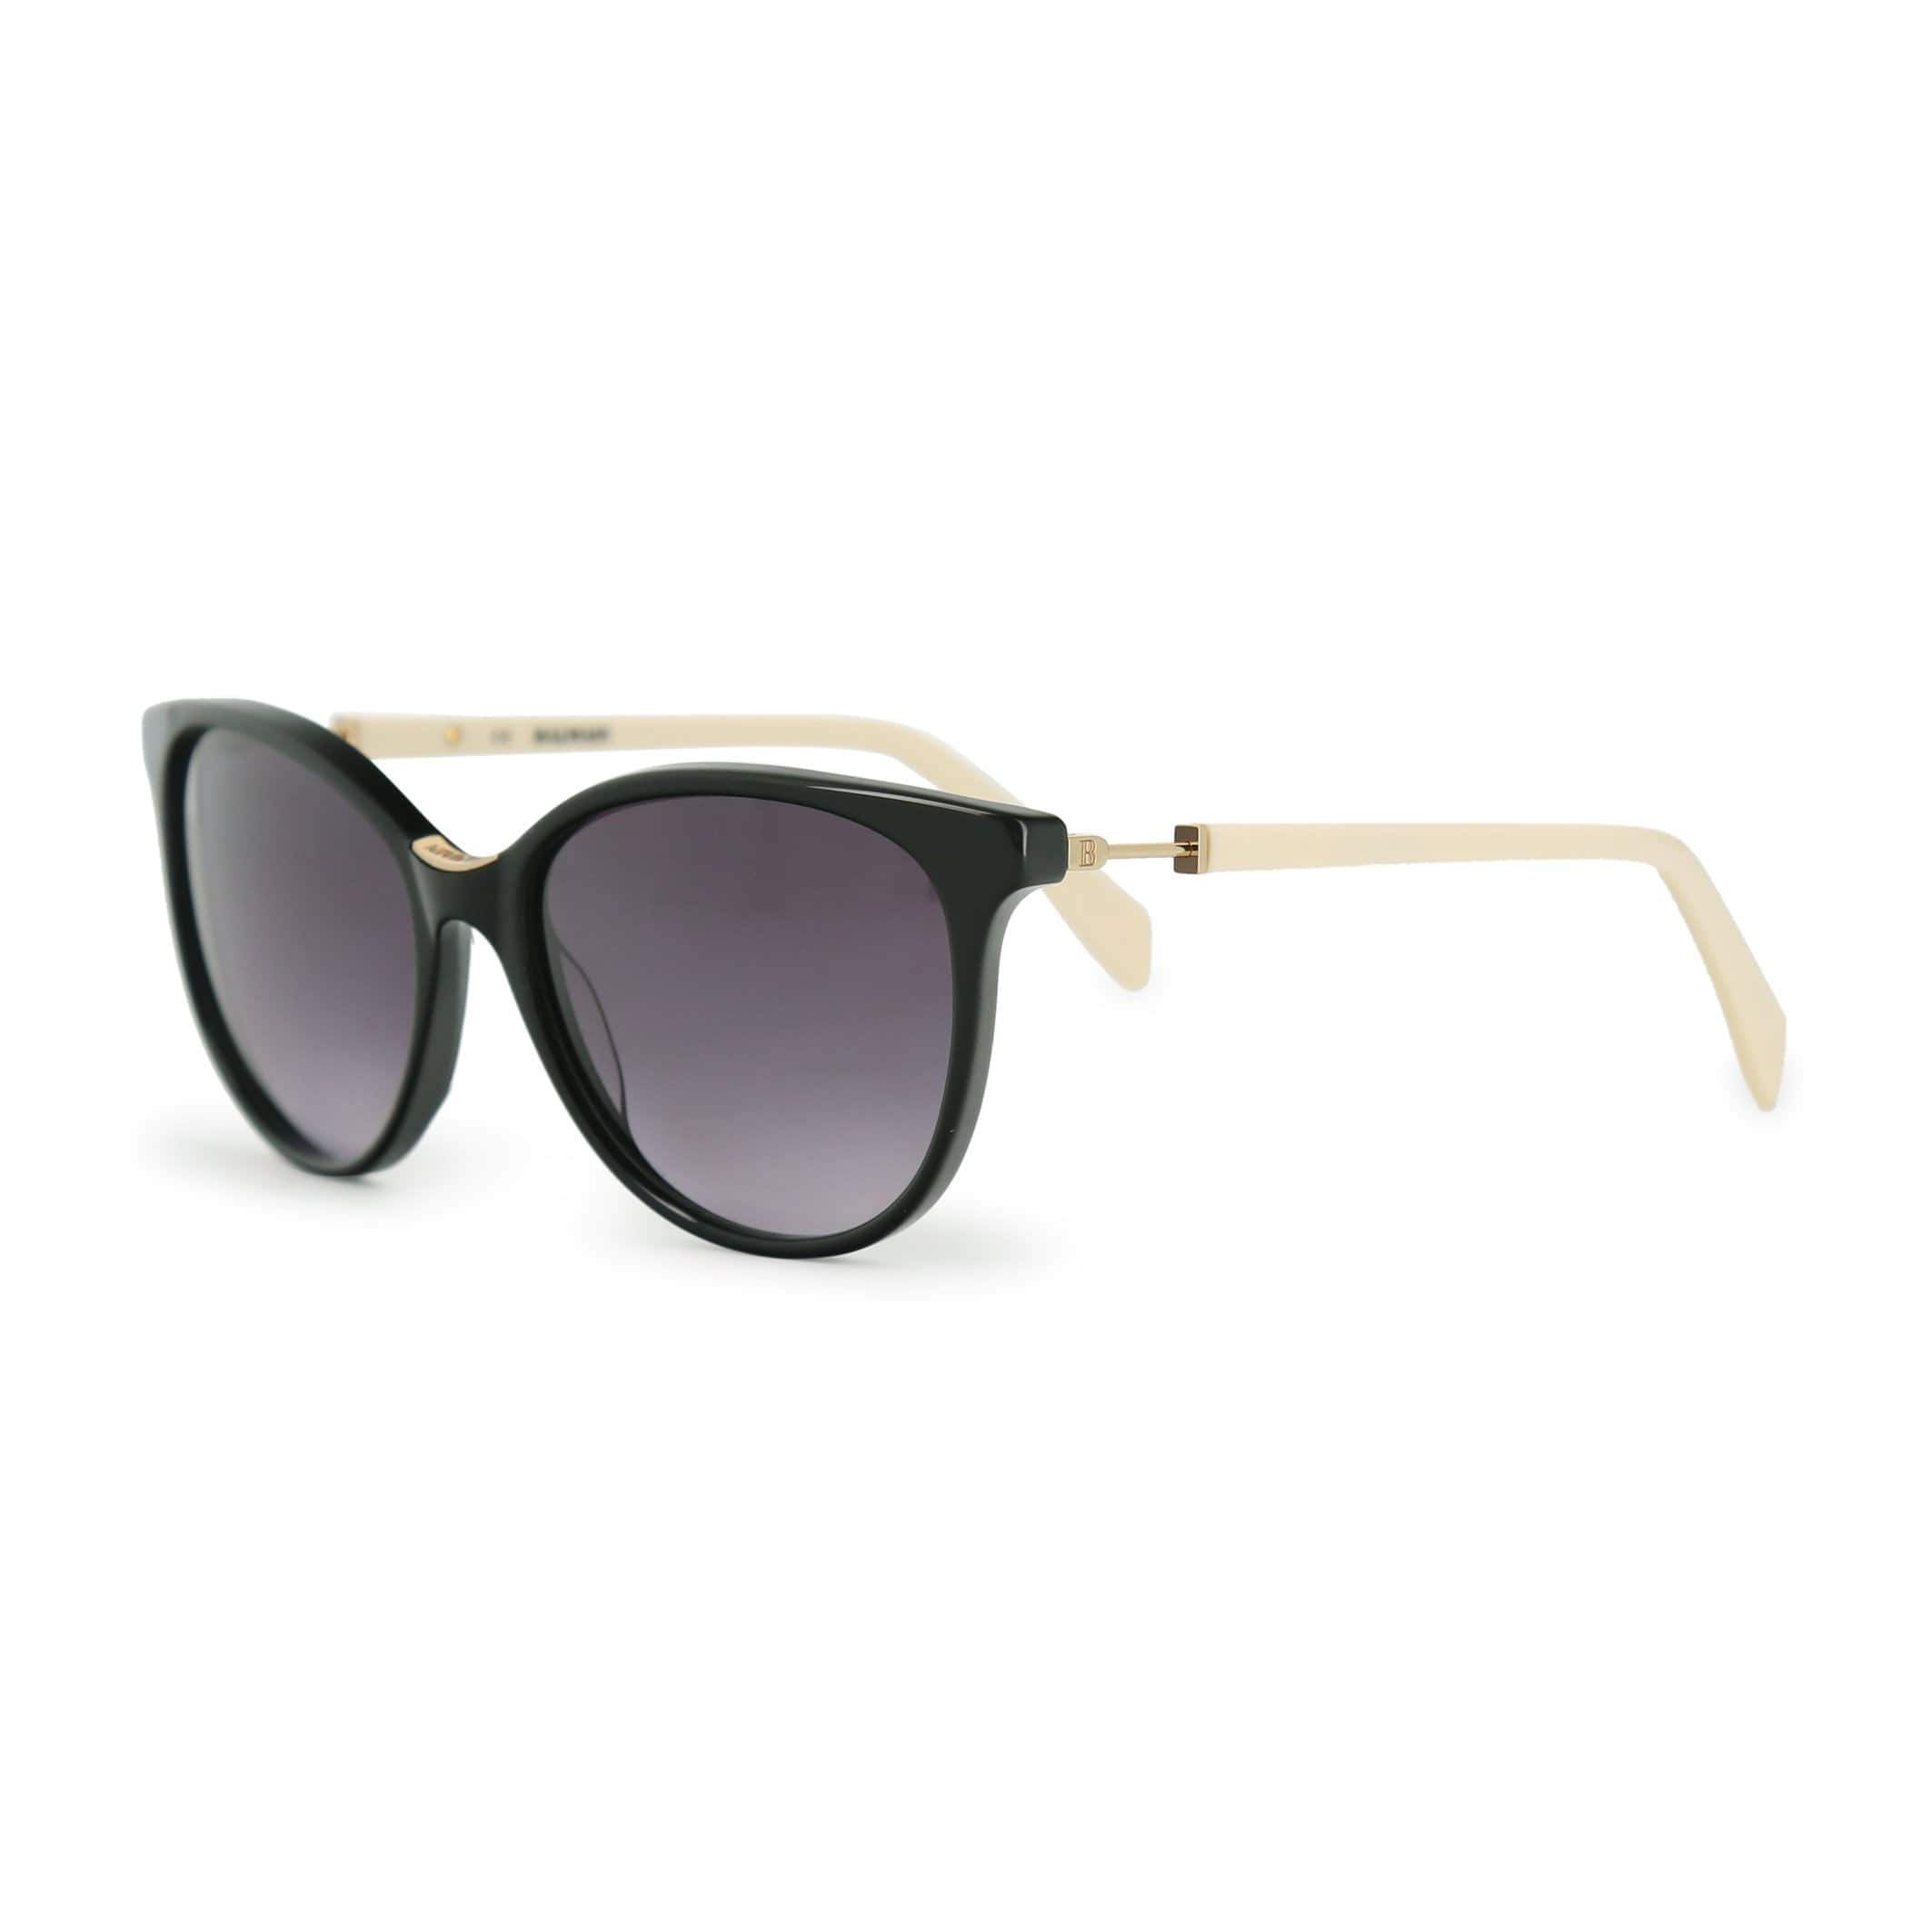 Balmain Accessories Sunglasses black-1 / NOSIZE Balmain - BL2102